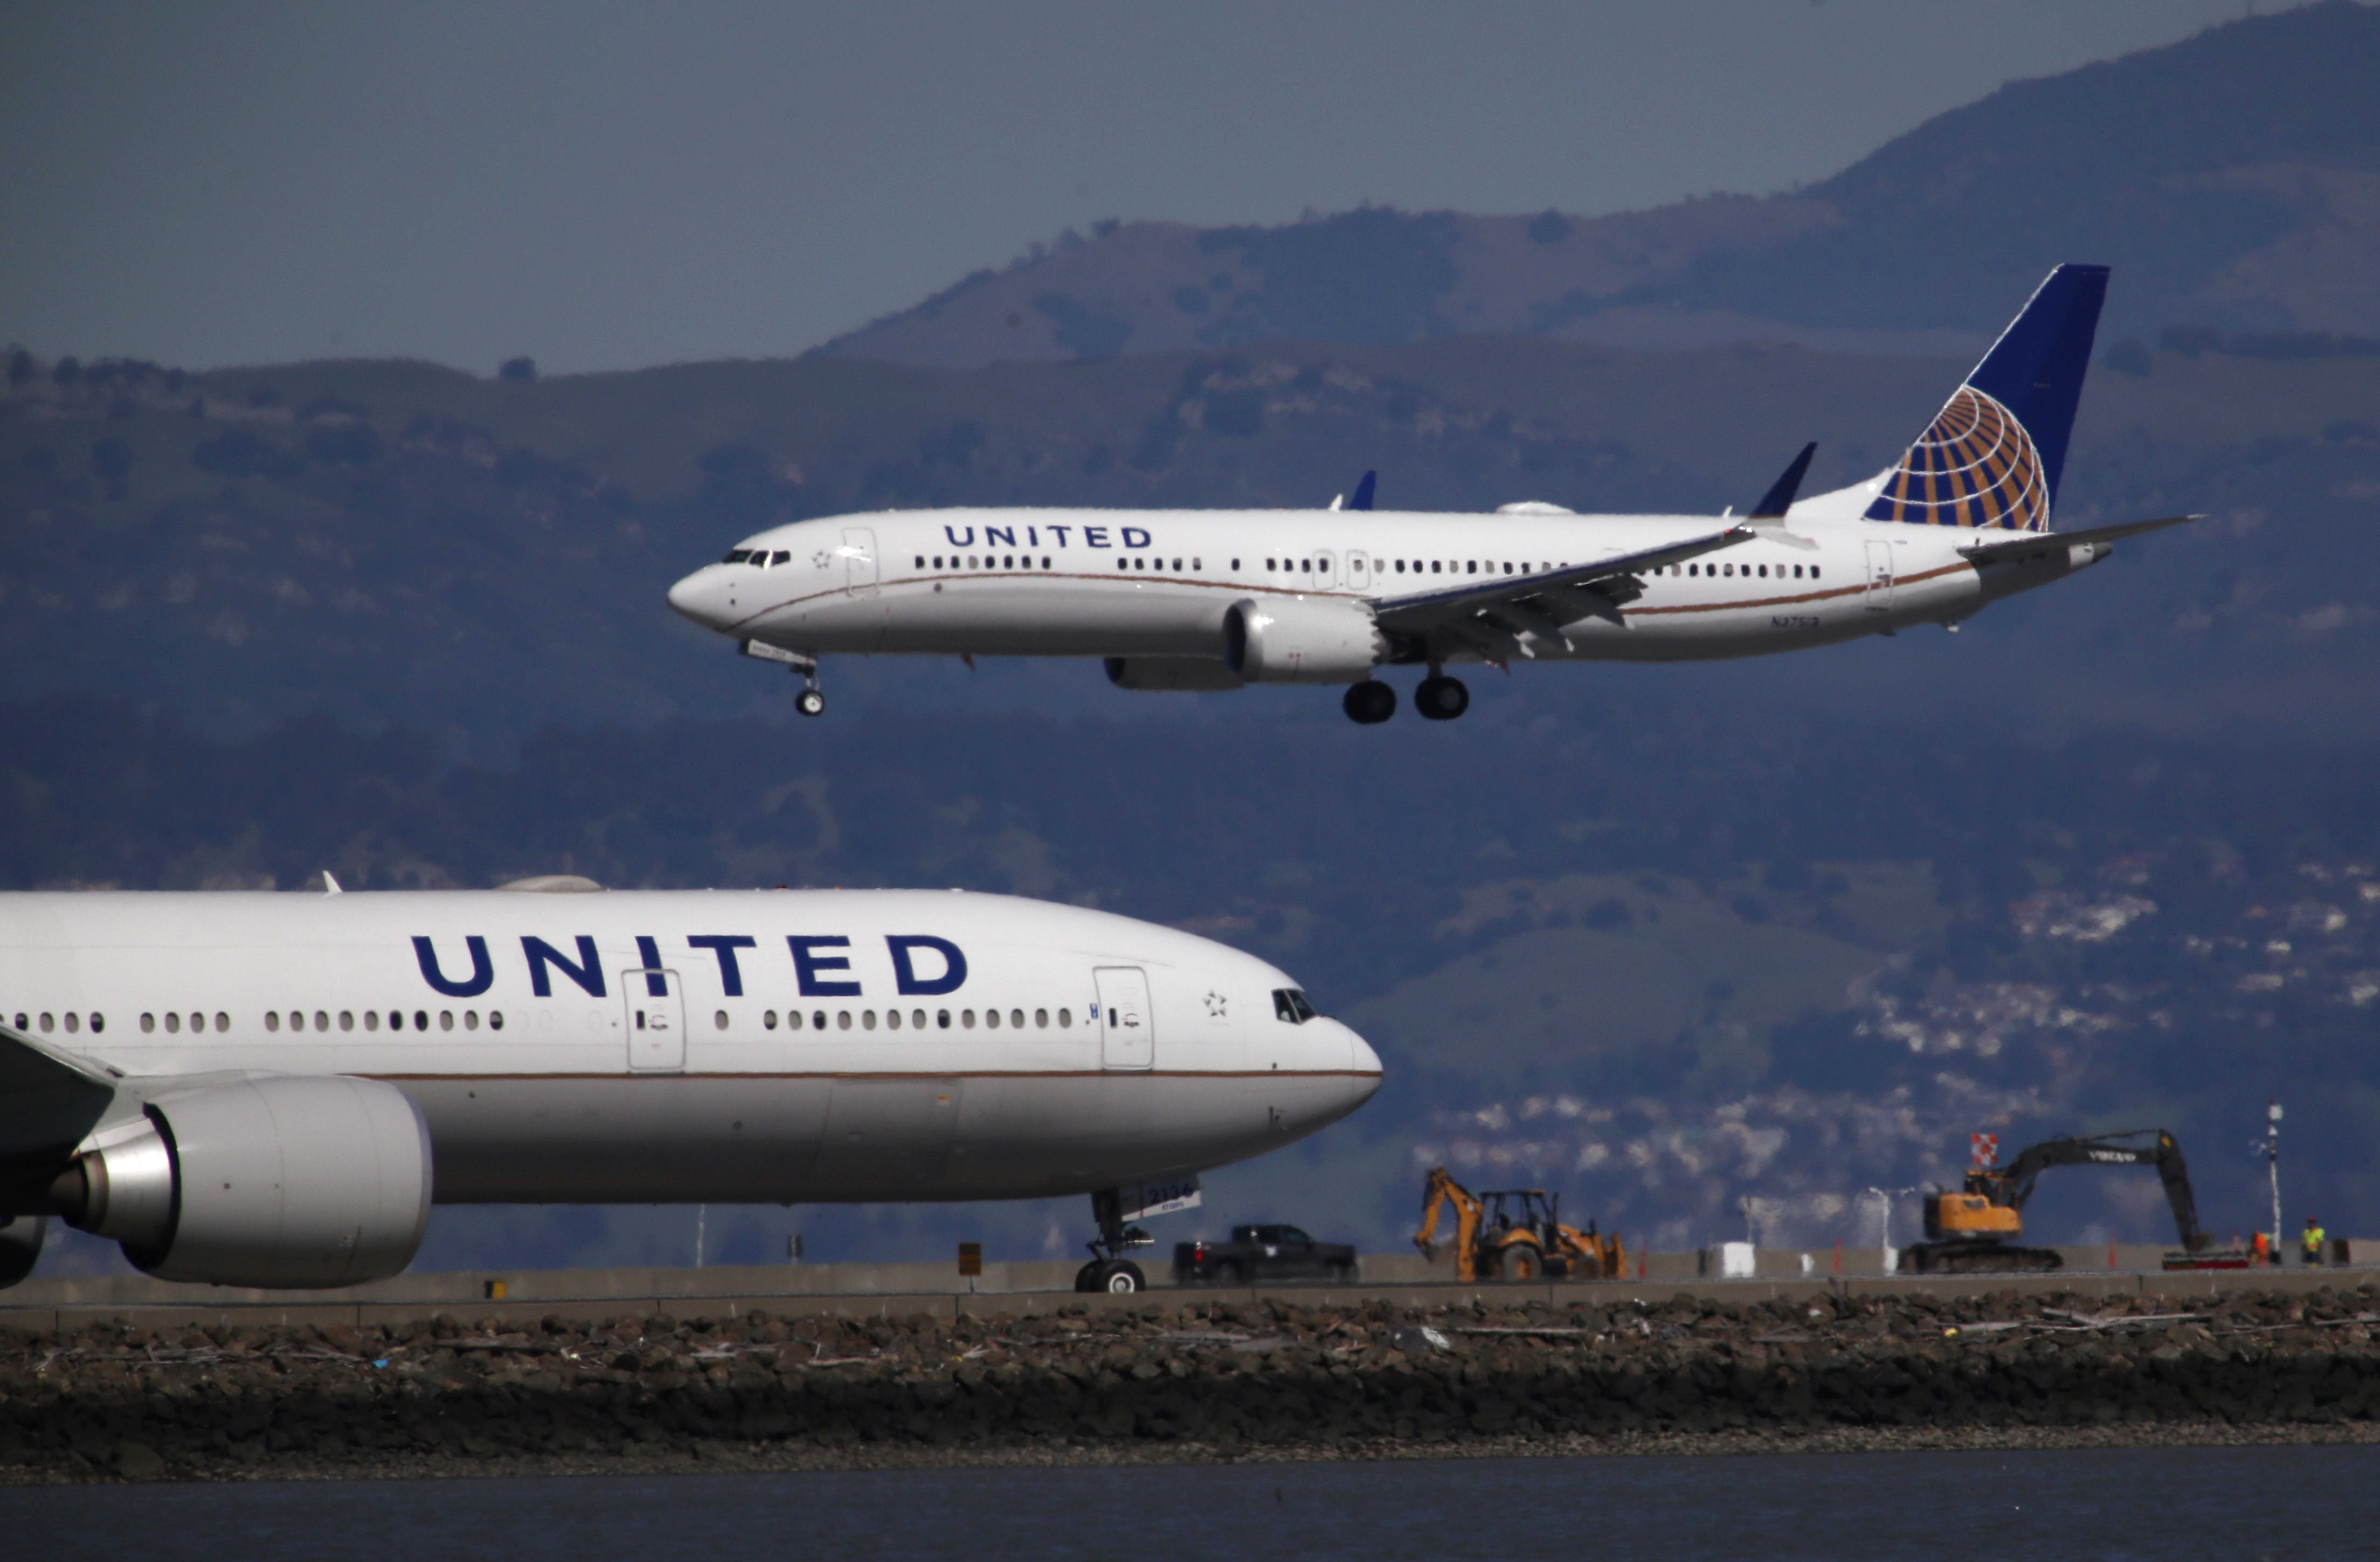 United Airlines buys 25 additional Boeing 737 Max jets in vote of confidence in the planes